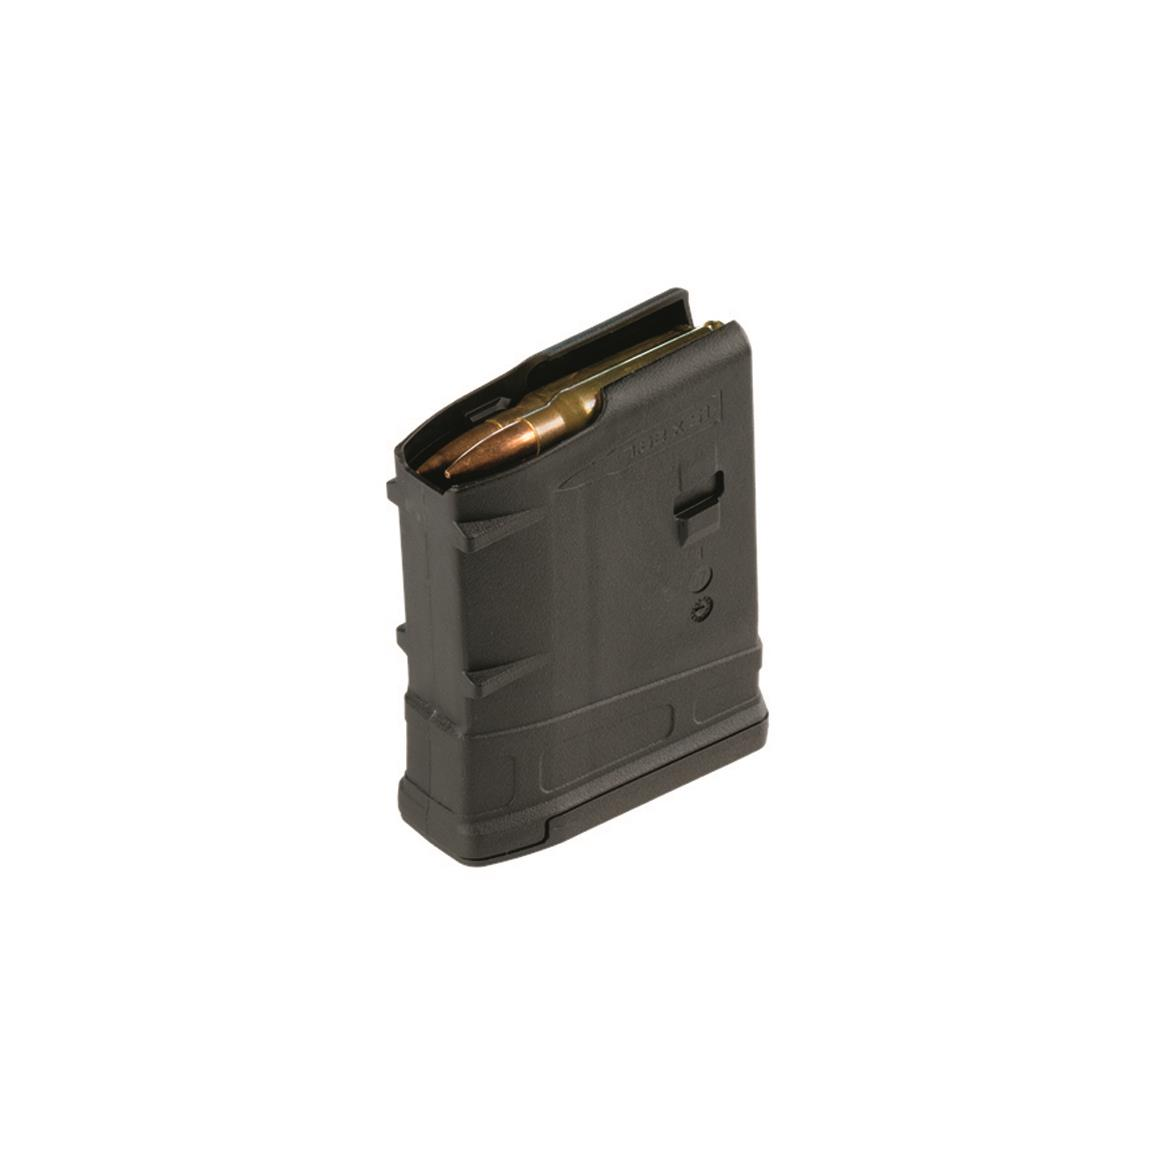 Magpul PMAG, 10 LR/SR Gen M3 Magazine, 7.62x51mm, 10 Rounds, Black